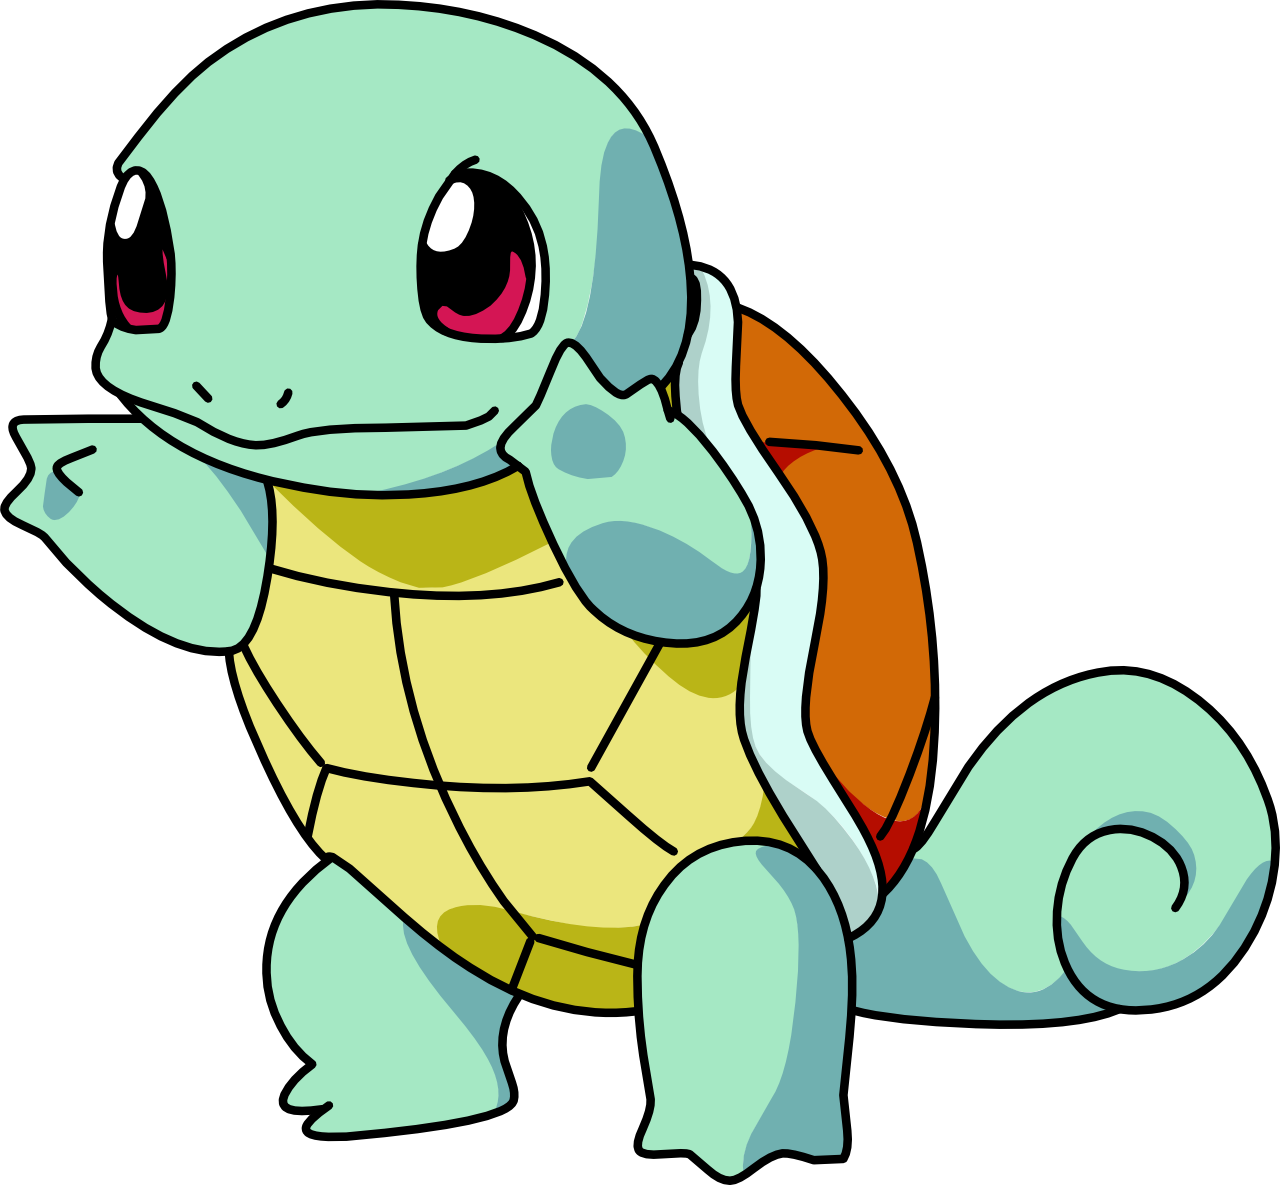 1280 x 1185 png 176kBSquirtle